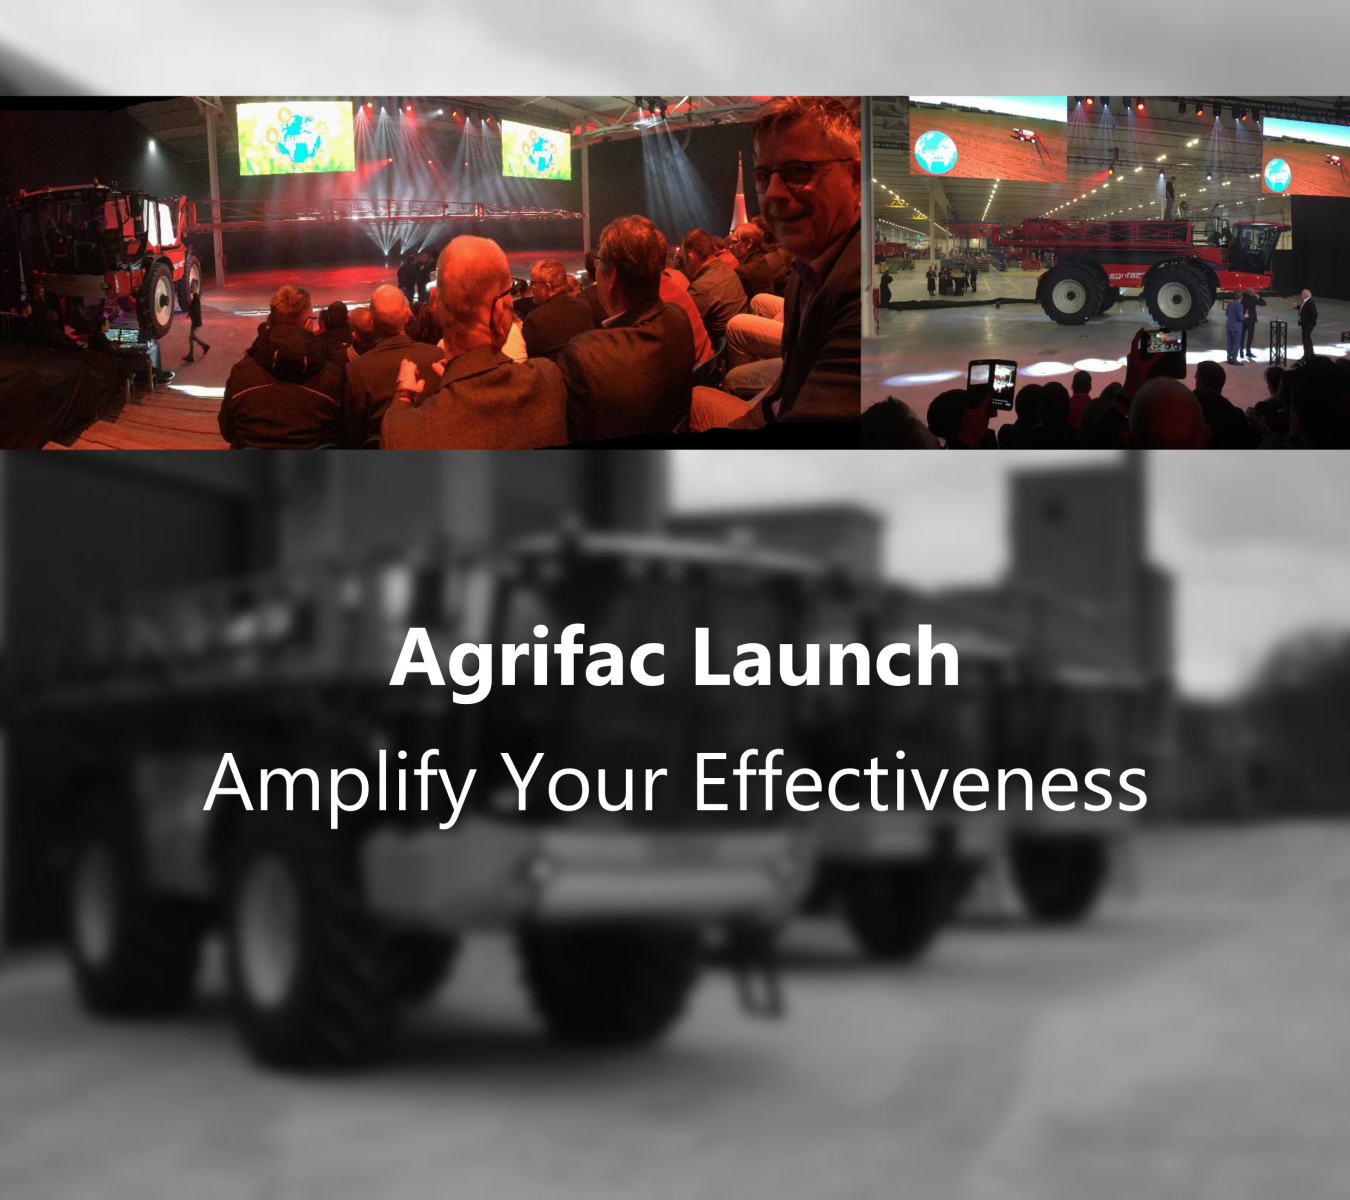 Agrifac Launch Week Press & VIP day